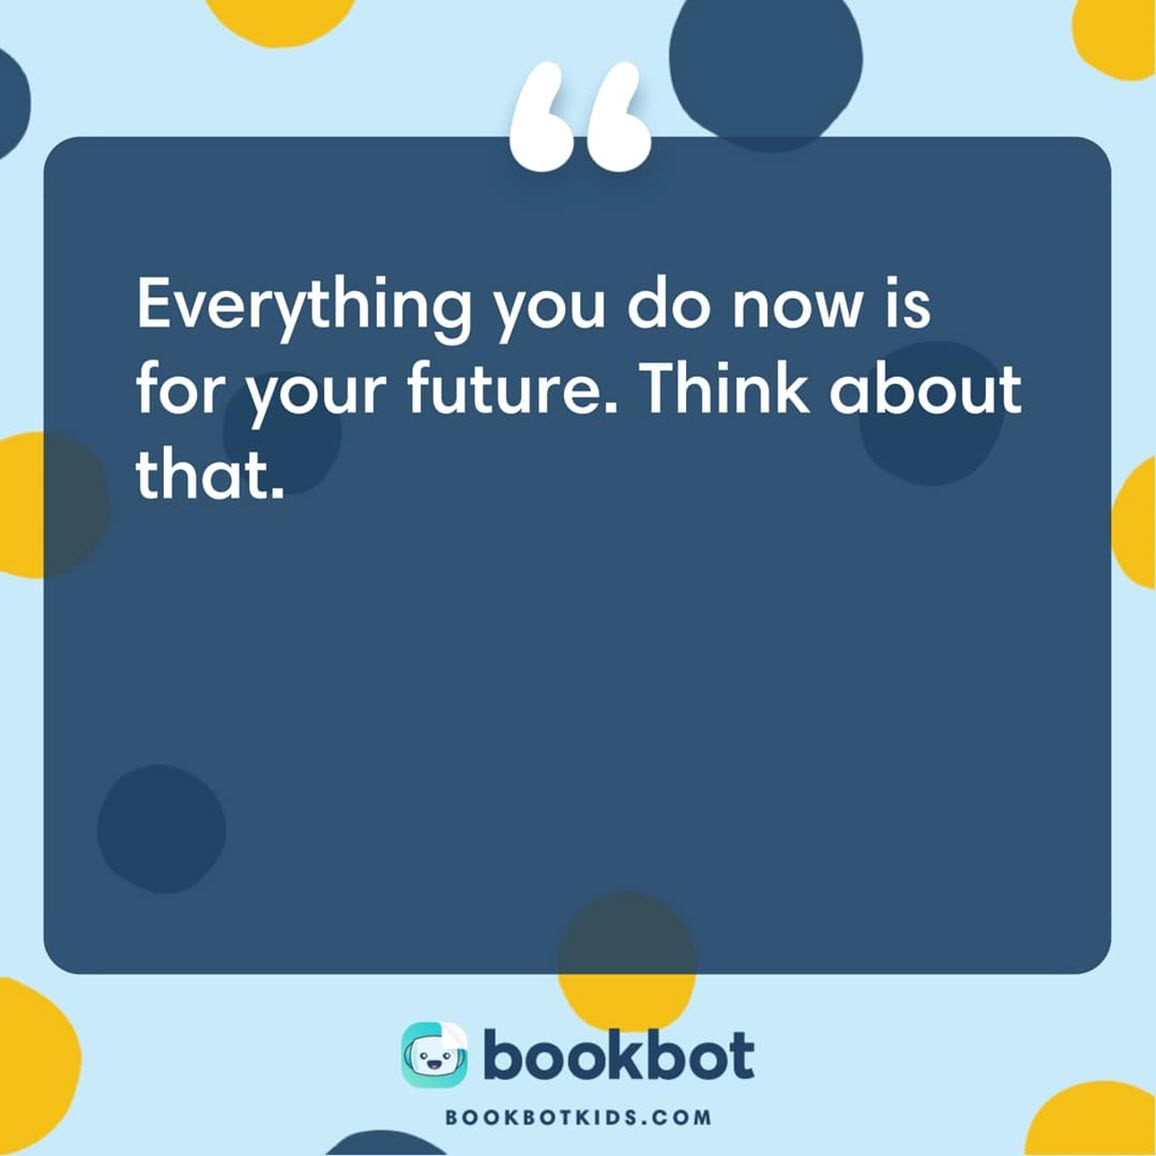 Everything you do now is for your future. Think about that.